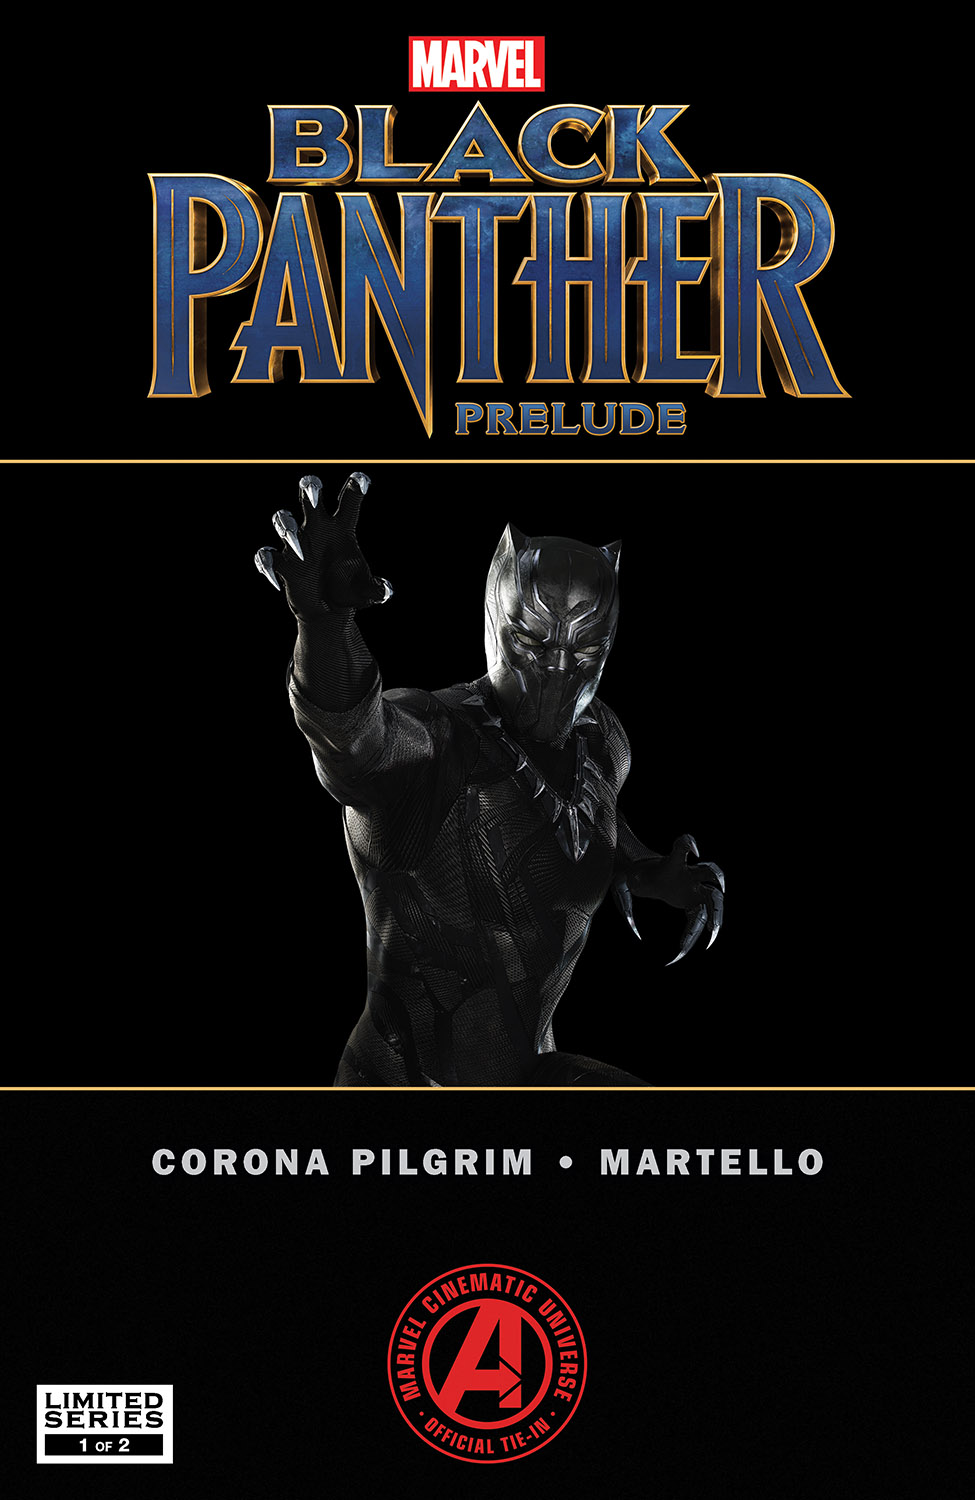 Marvel's Black Panther Prelude (2017) #1